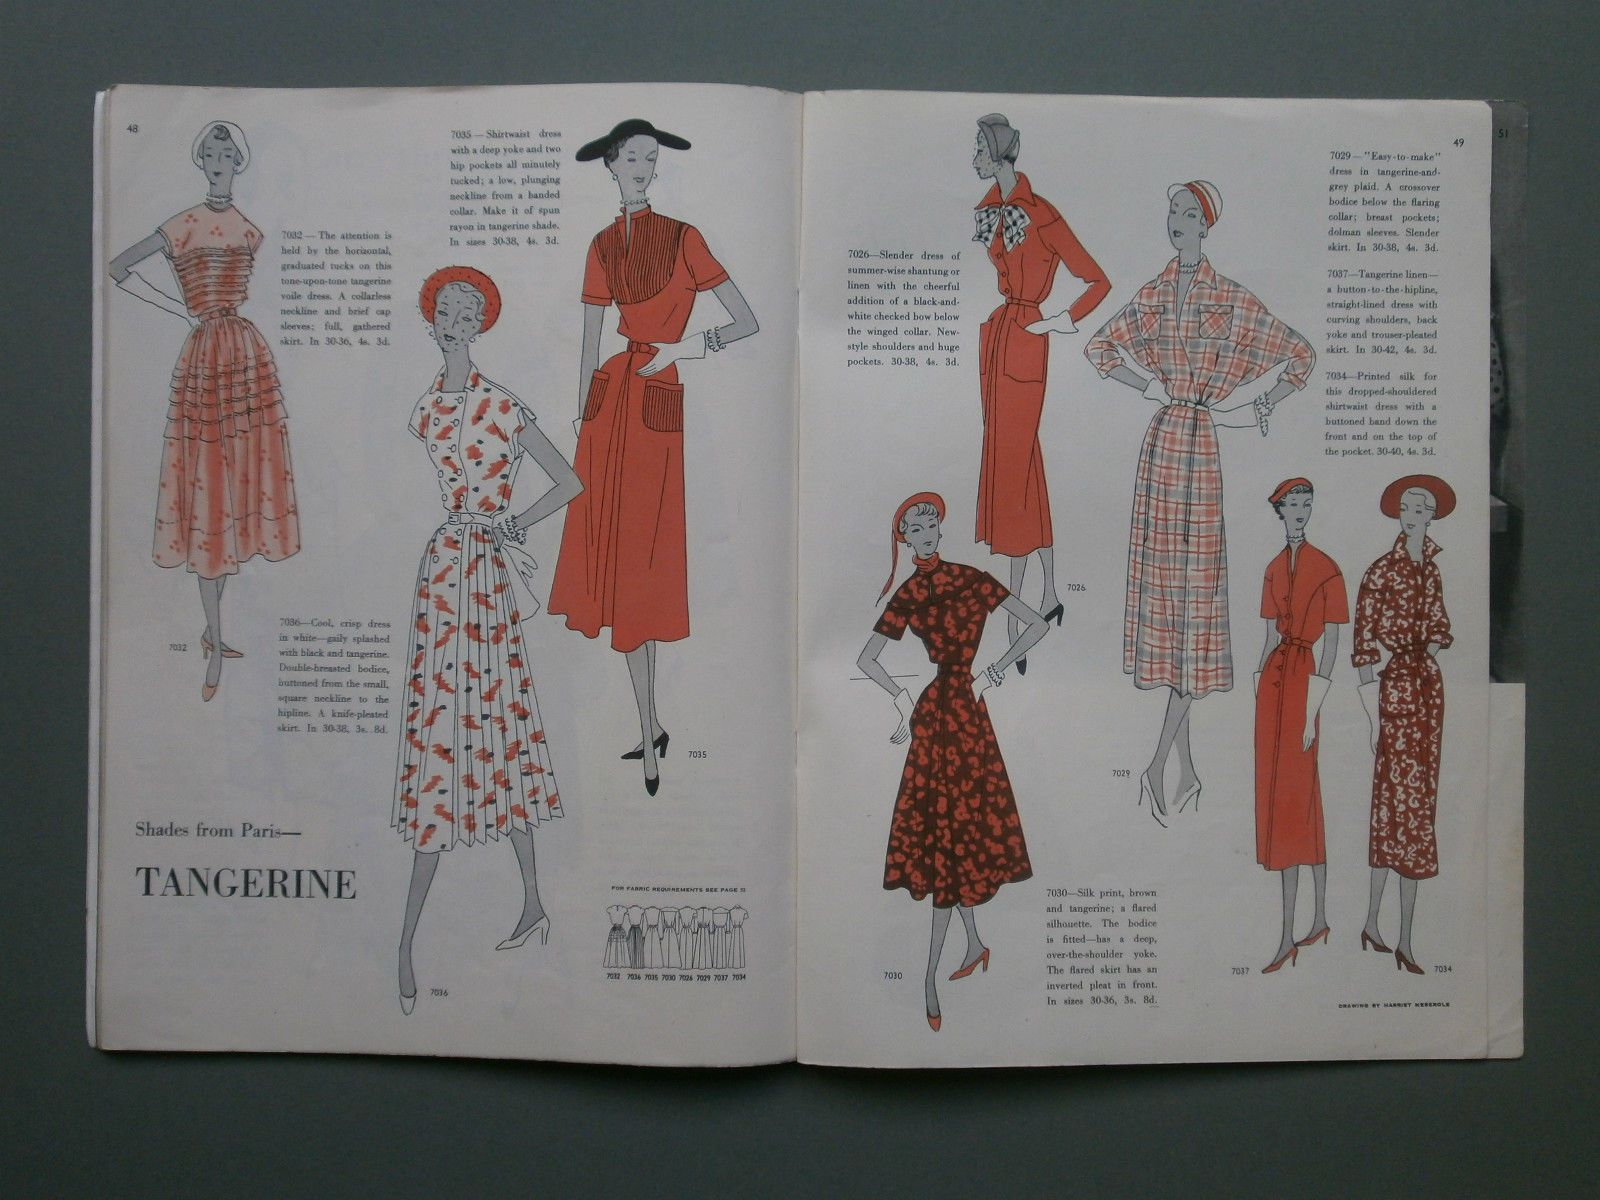 VOGUE PATTERN BOOK SUMMER 1950 - SEWING, FASHIONS, EXCELLENT ...